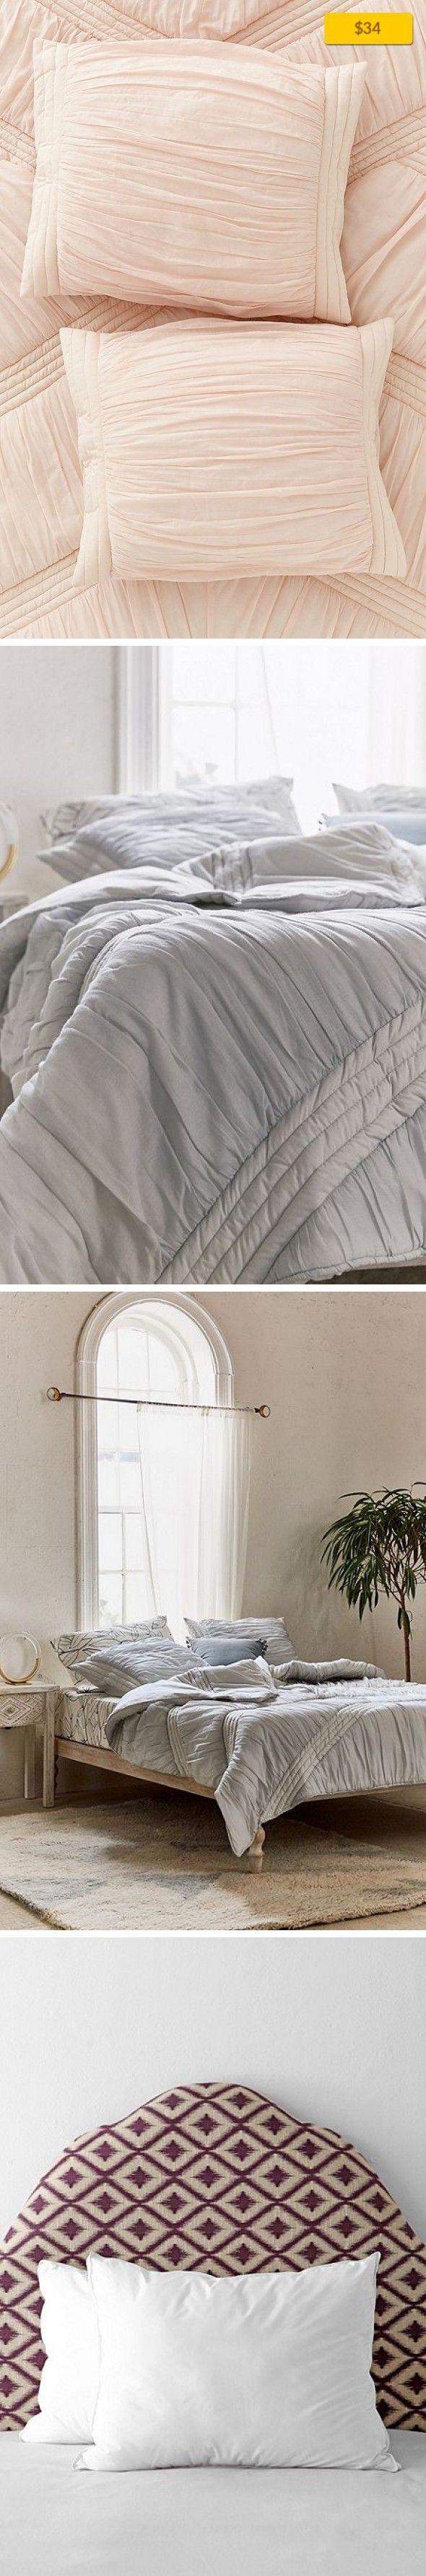 """Ruffle Sham Set Apartment, Bedding, Pillowcases + Shams   Set of 2 cotton pillow shams in a ruffle design. Perfect for a femme update to any bedding. Content + Care - Set of 2 - Cotton - Machine wash - Imported Size - Dimensions: 21""""l x 27""""w"""